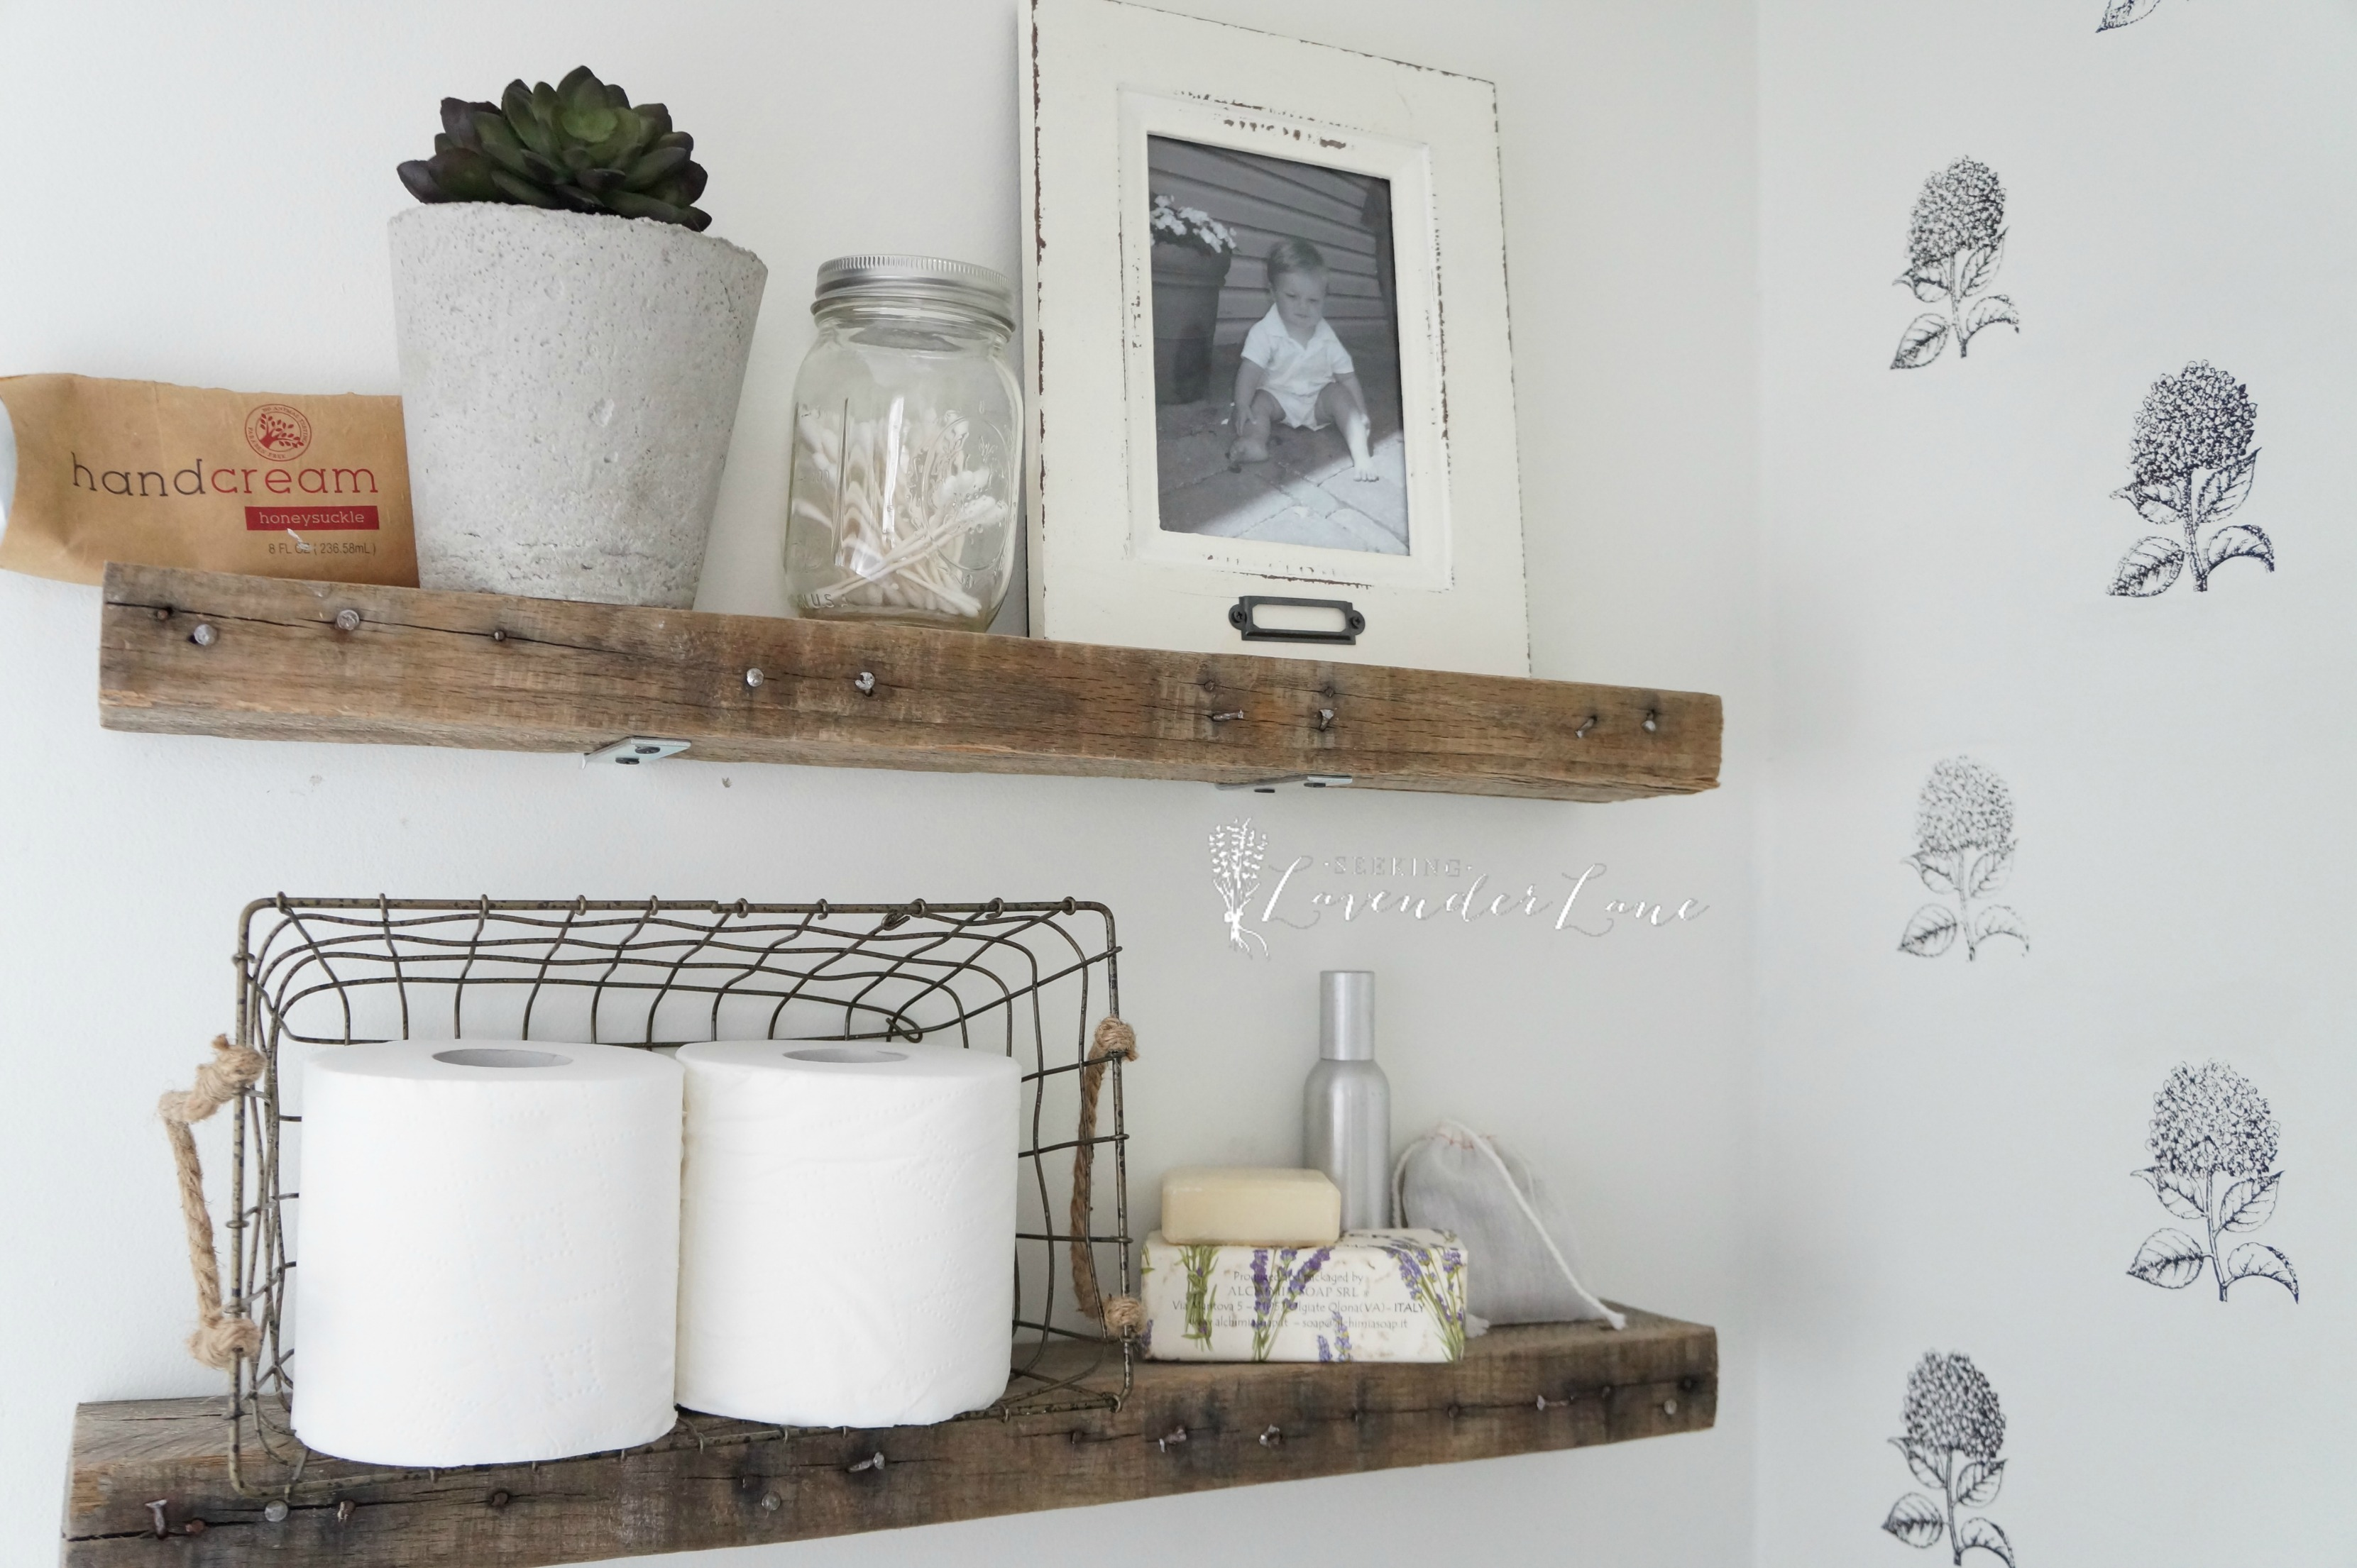 diy rustic bathroom shelves seeking lavendar lane pallet wood floating cream grey shelf board shoe hanging ideas inch wall coat rack white high gloss cube storage that hang